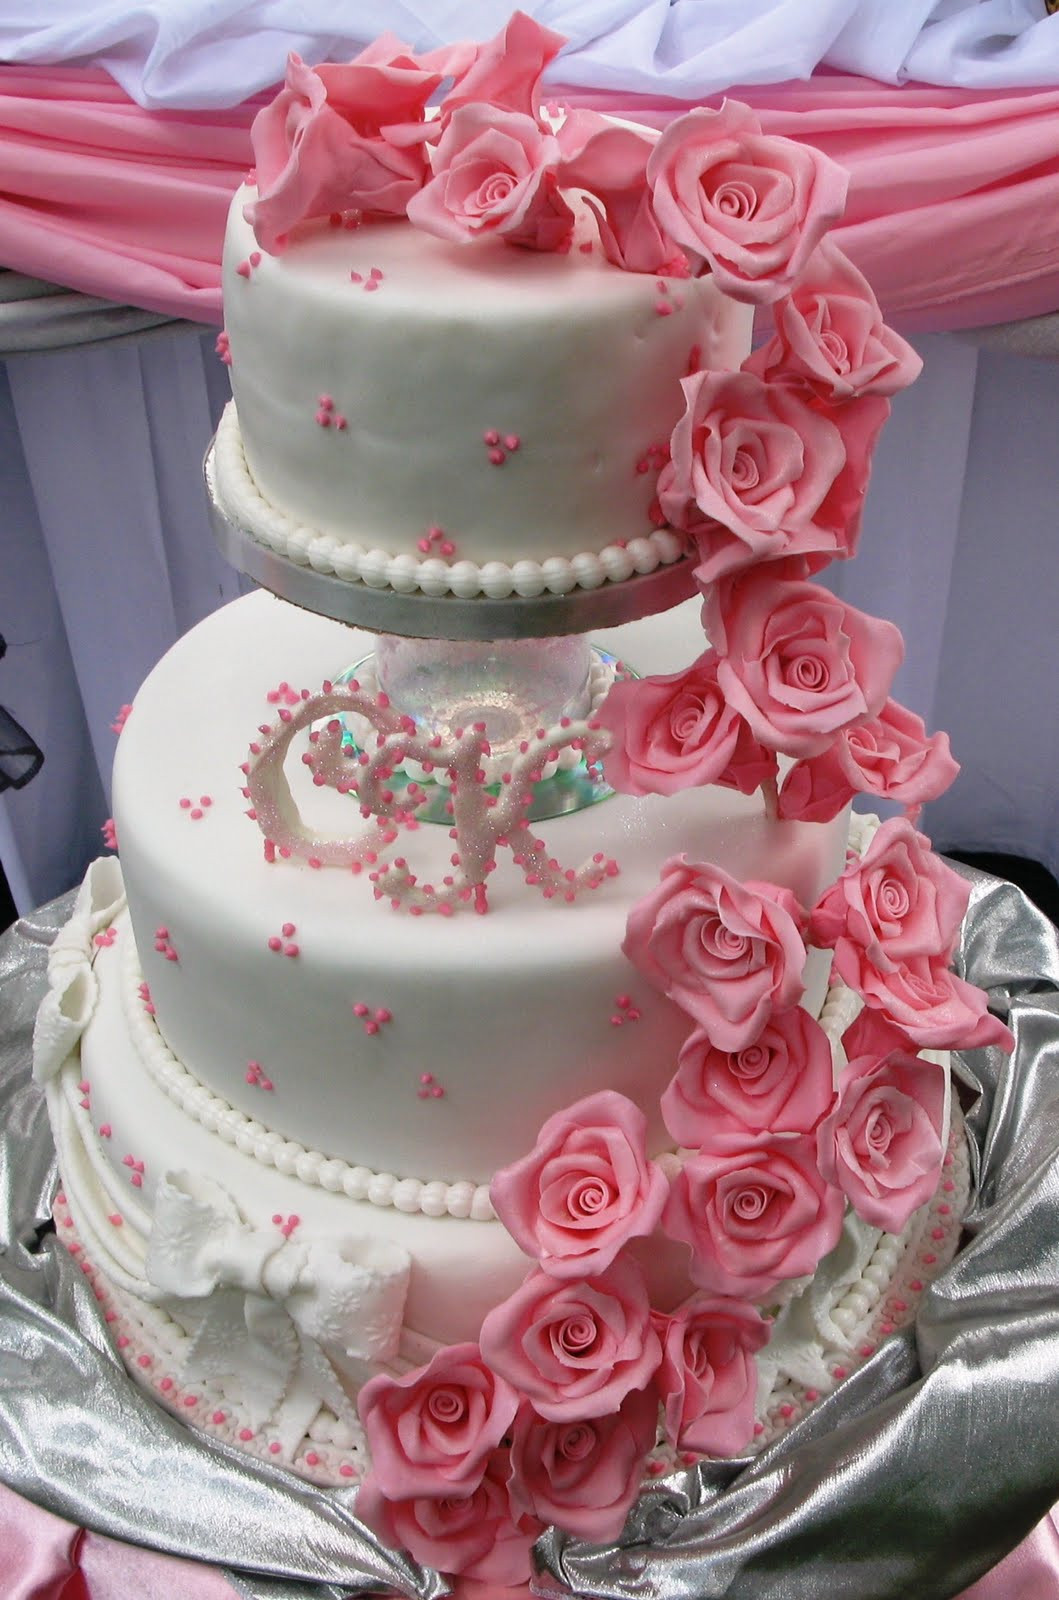 Wedding Cakes With Roses  Sugarcraft by Soni Three Tier Wedding Cake & Roses